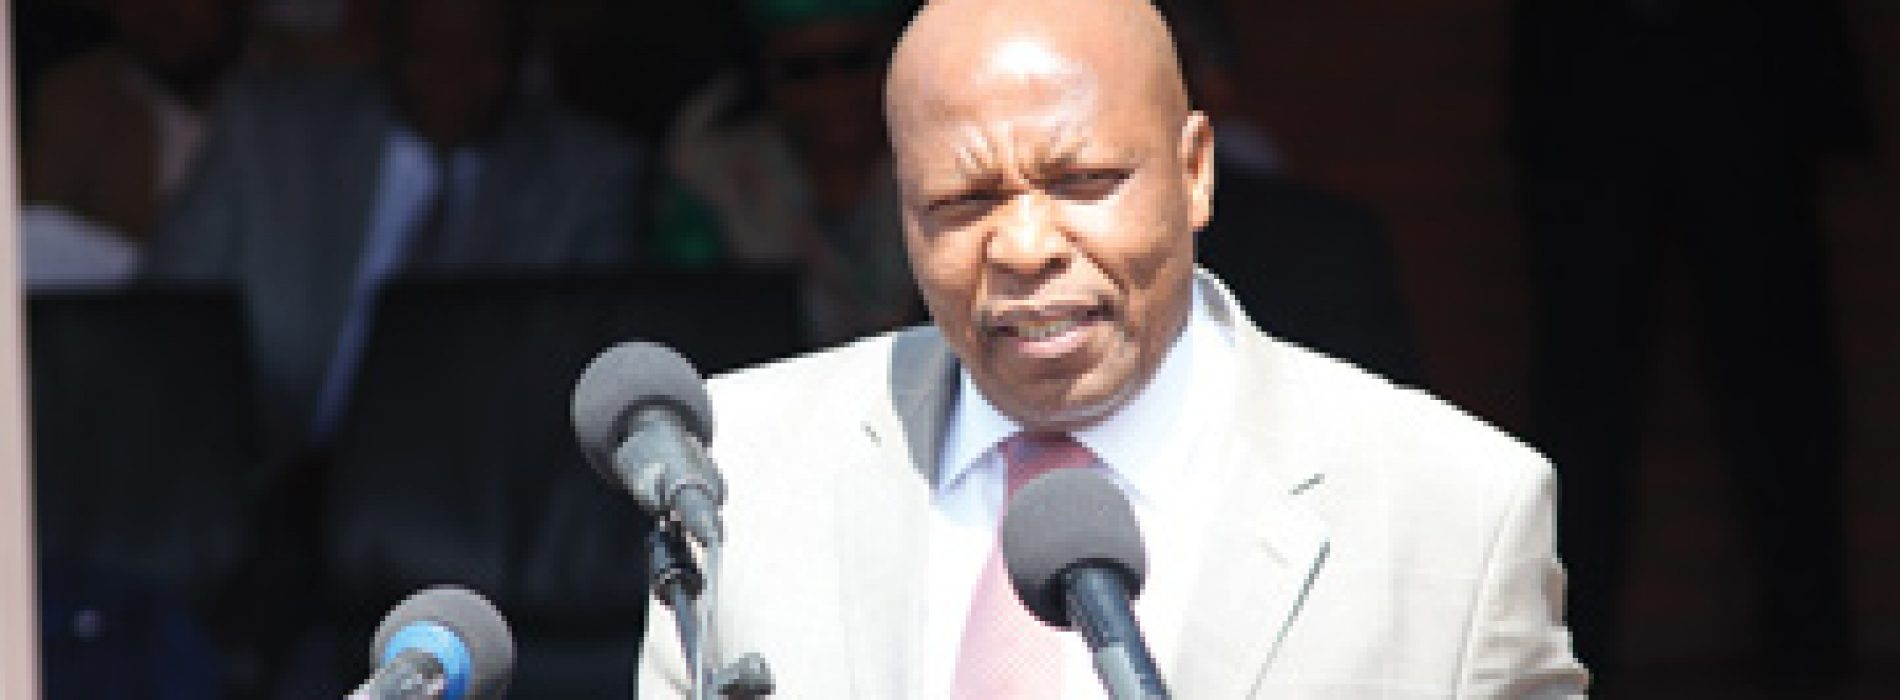 Rakuoane blasts Thabane over pensions